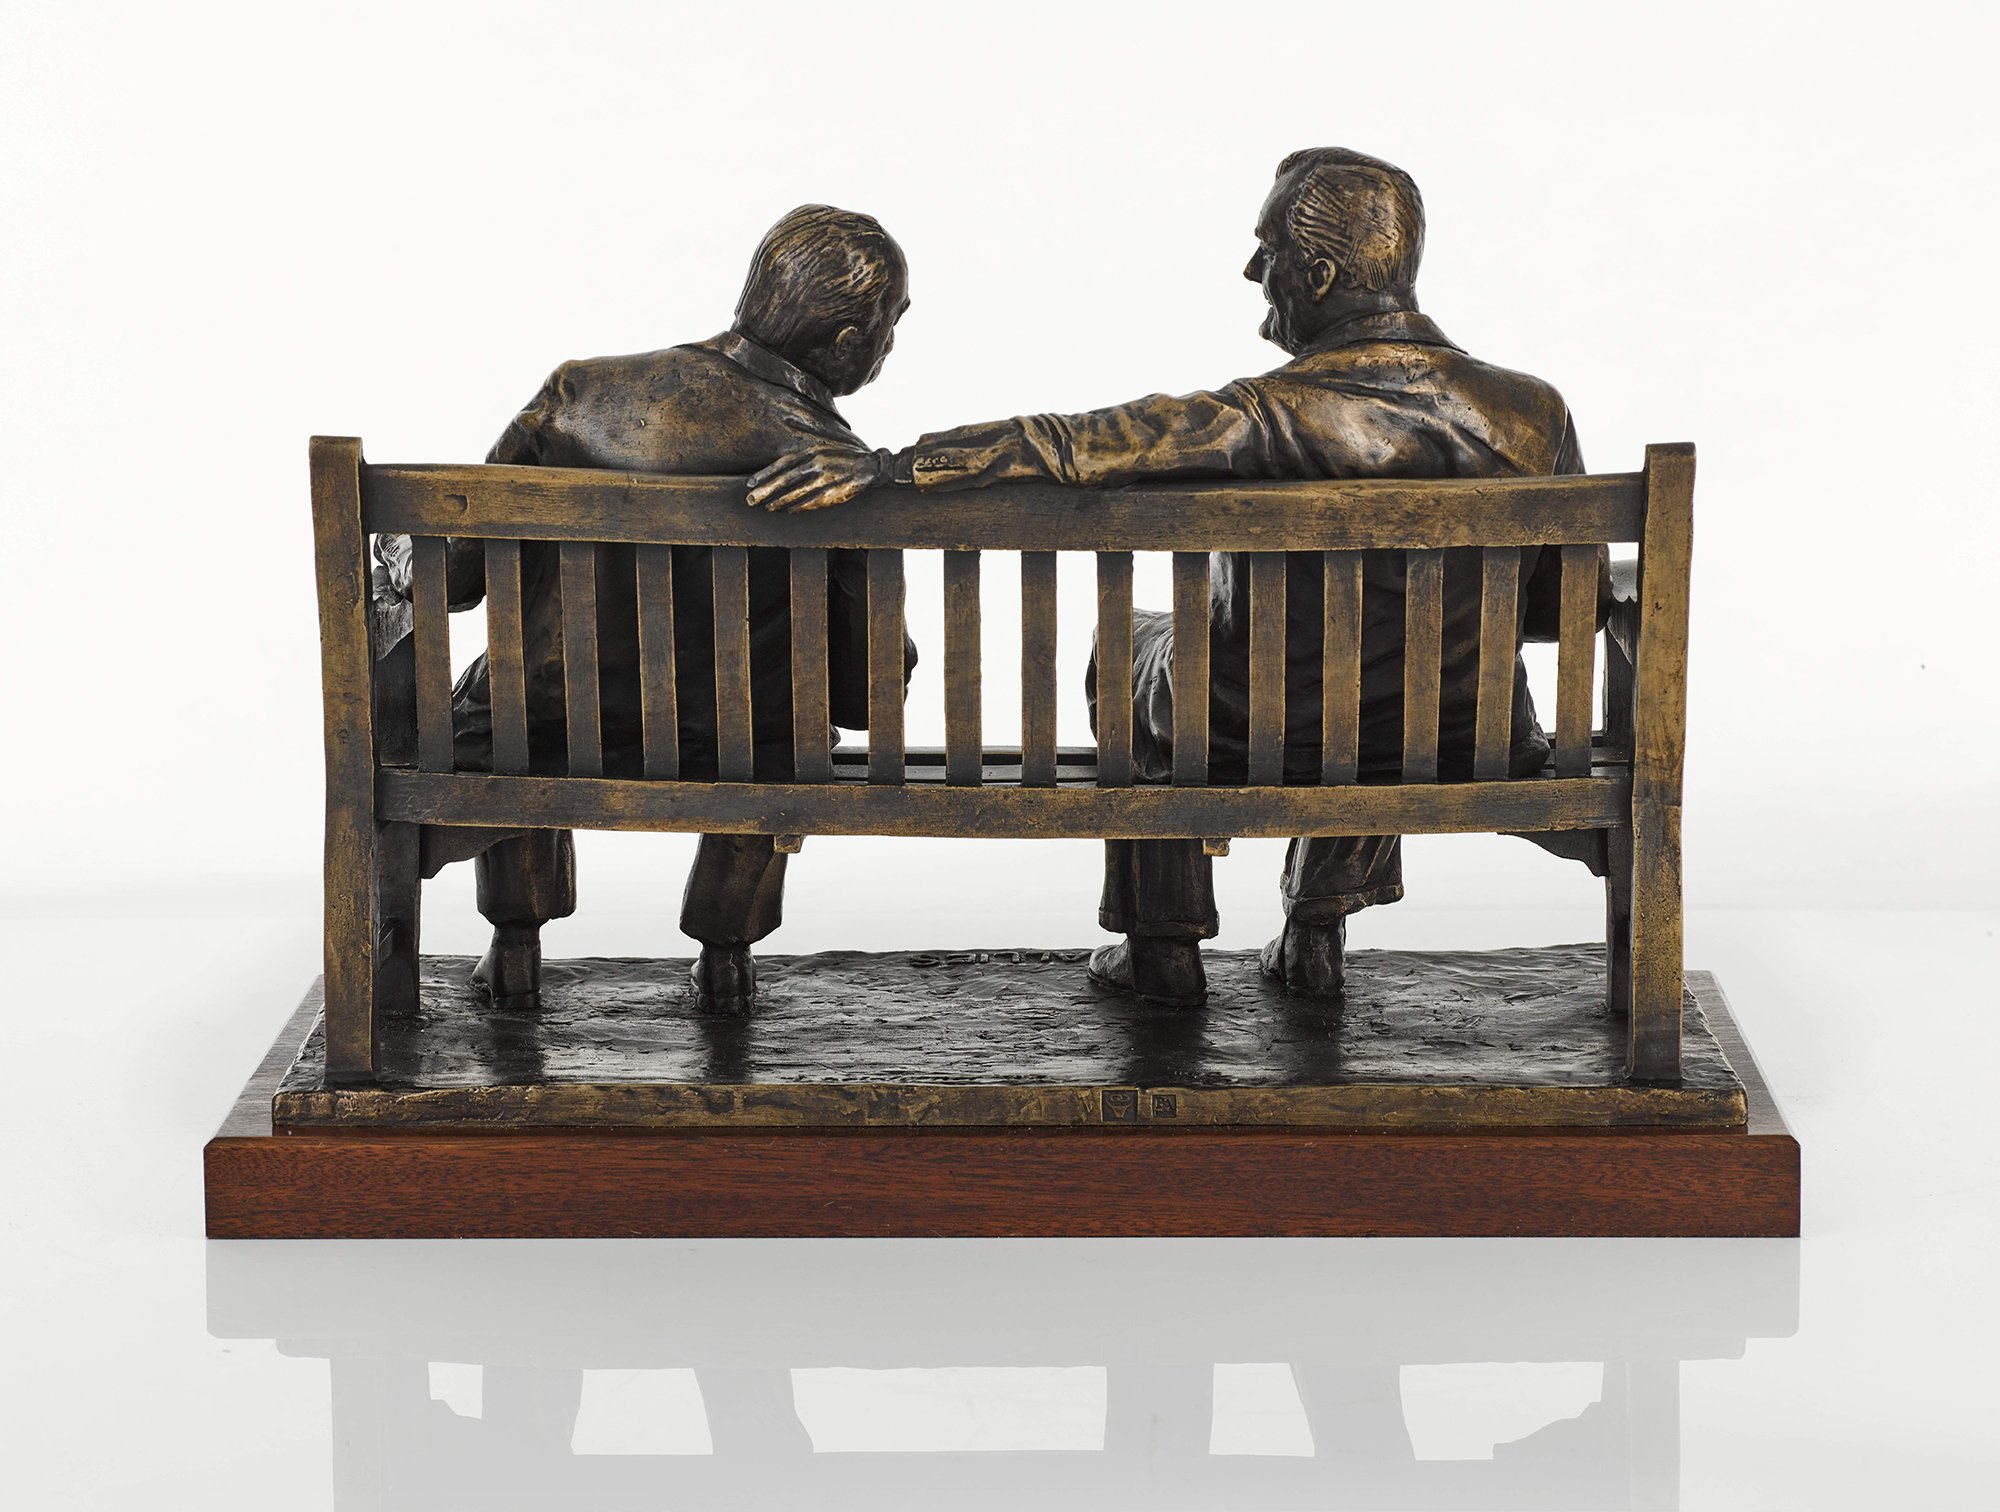 Lawrence Holofcener Allies Maquette II